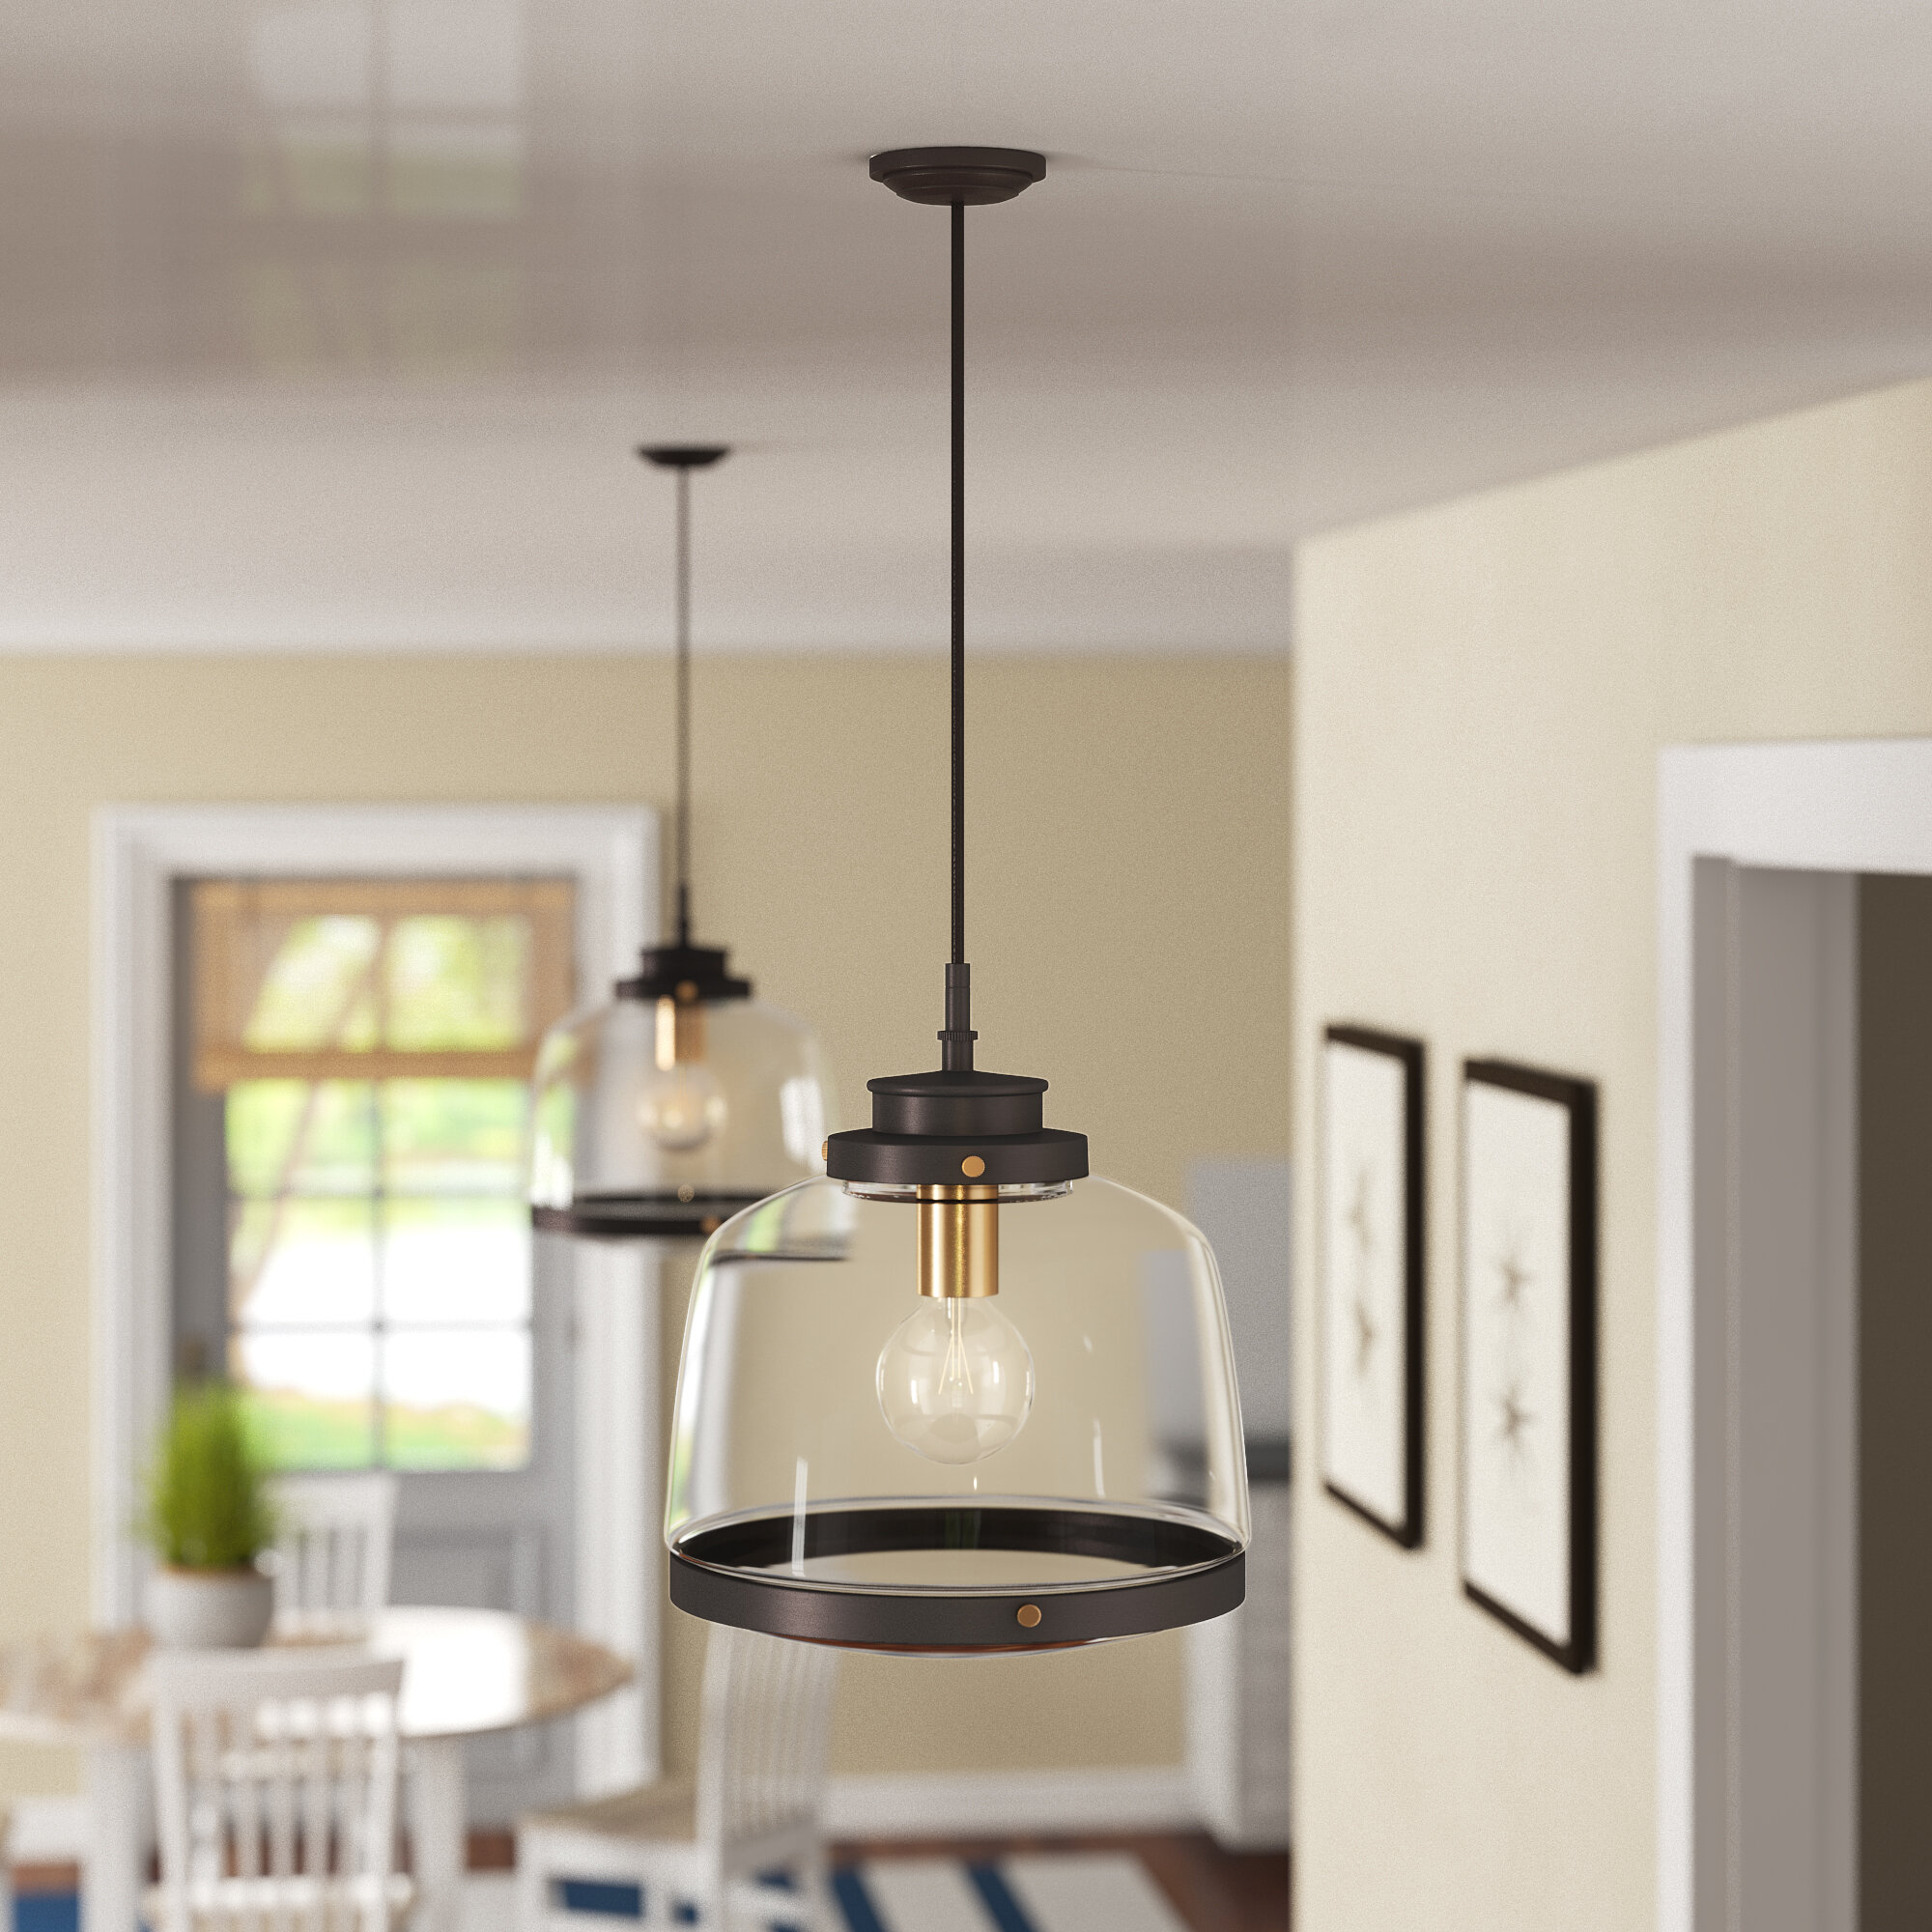 Light Single Schoolhouse Pendant